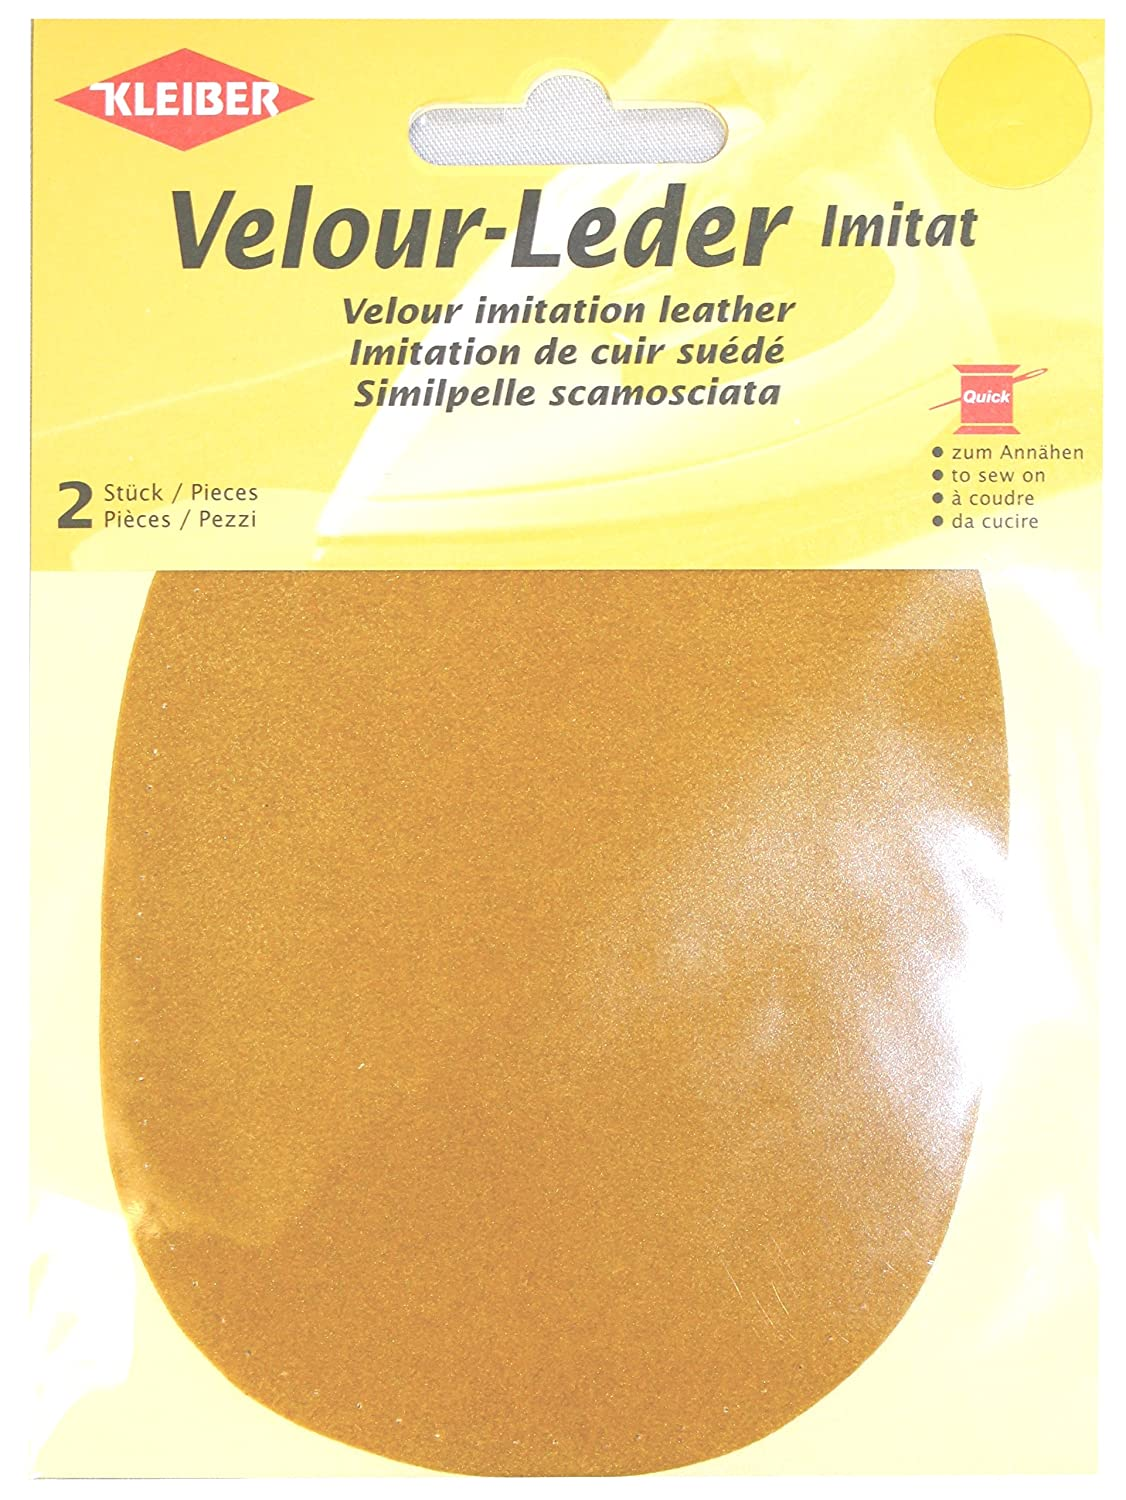 Kleiber 12.5 x 10 cm Imitation Suede Leather Sew on Knee/Elbow Patches Oval, Citrus Yellow 896-41